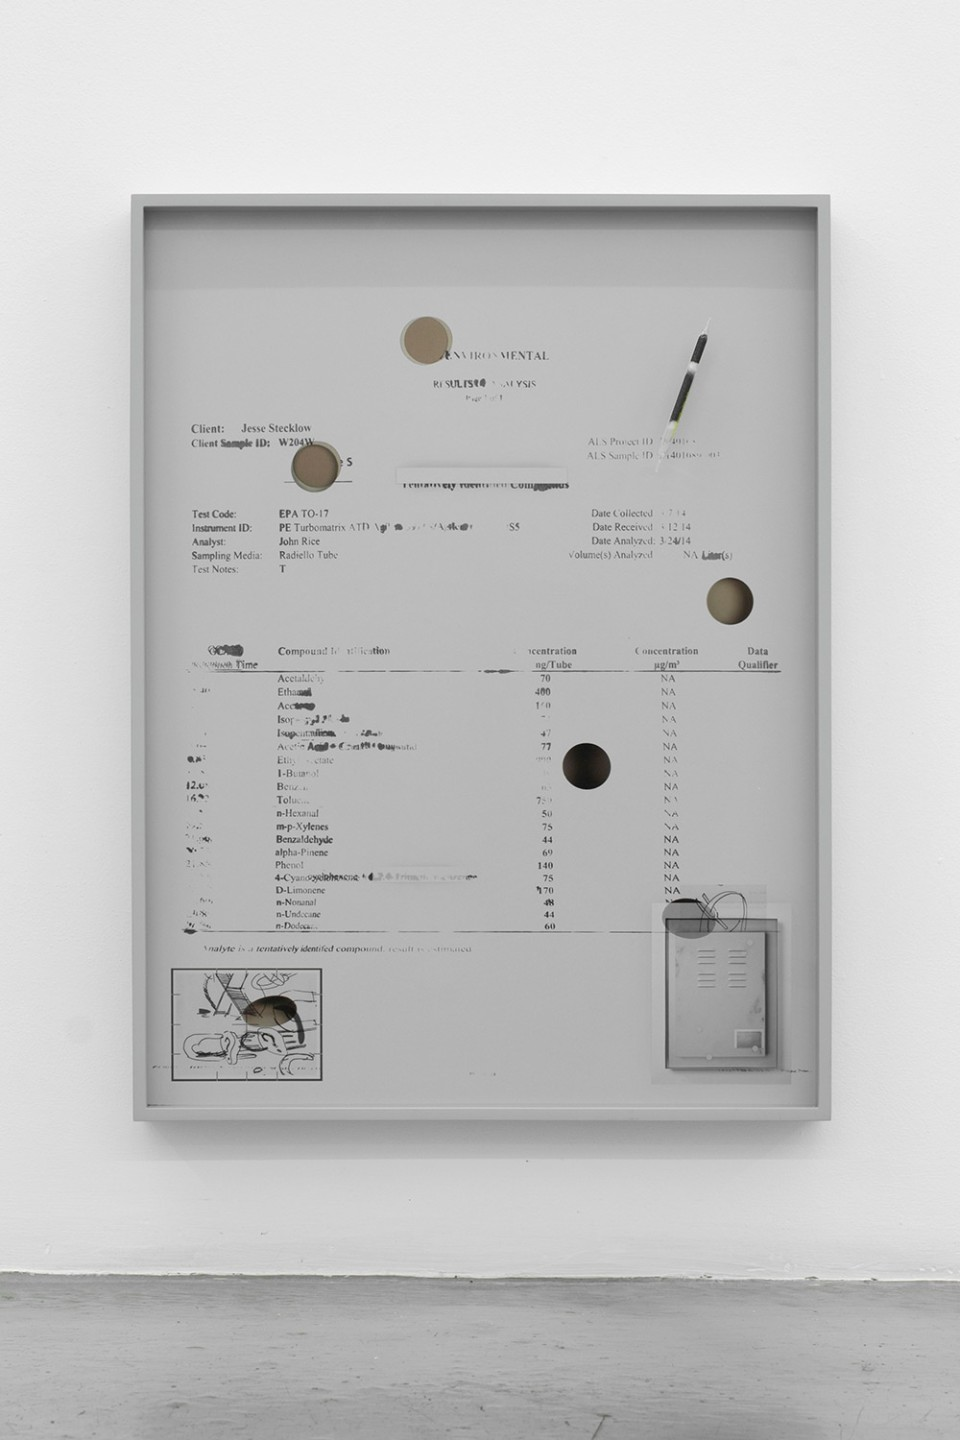 Image: Jesse Stecklow  Untitled (Variant), 2014  framed archival pigment print, Munsell neutral gray paint, sorbent tube  24 x 18 x 2-1/2 inches  unique